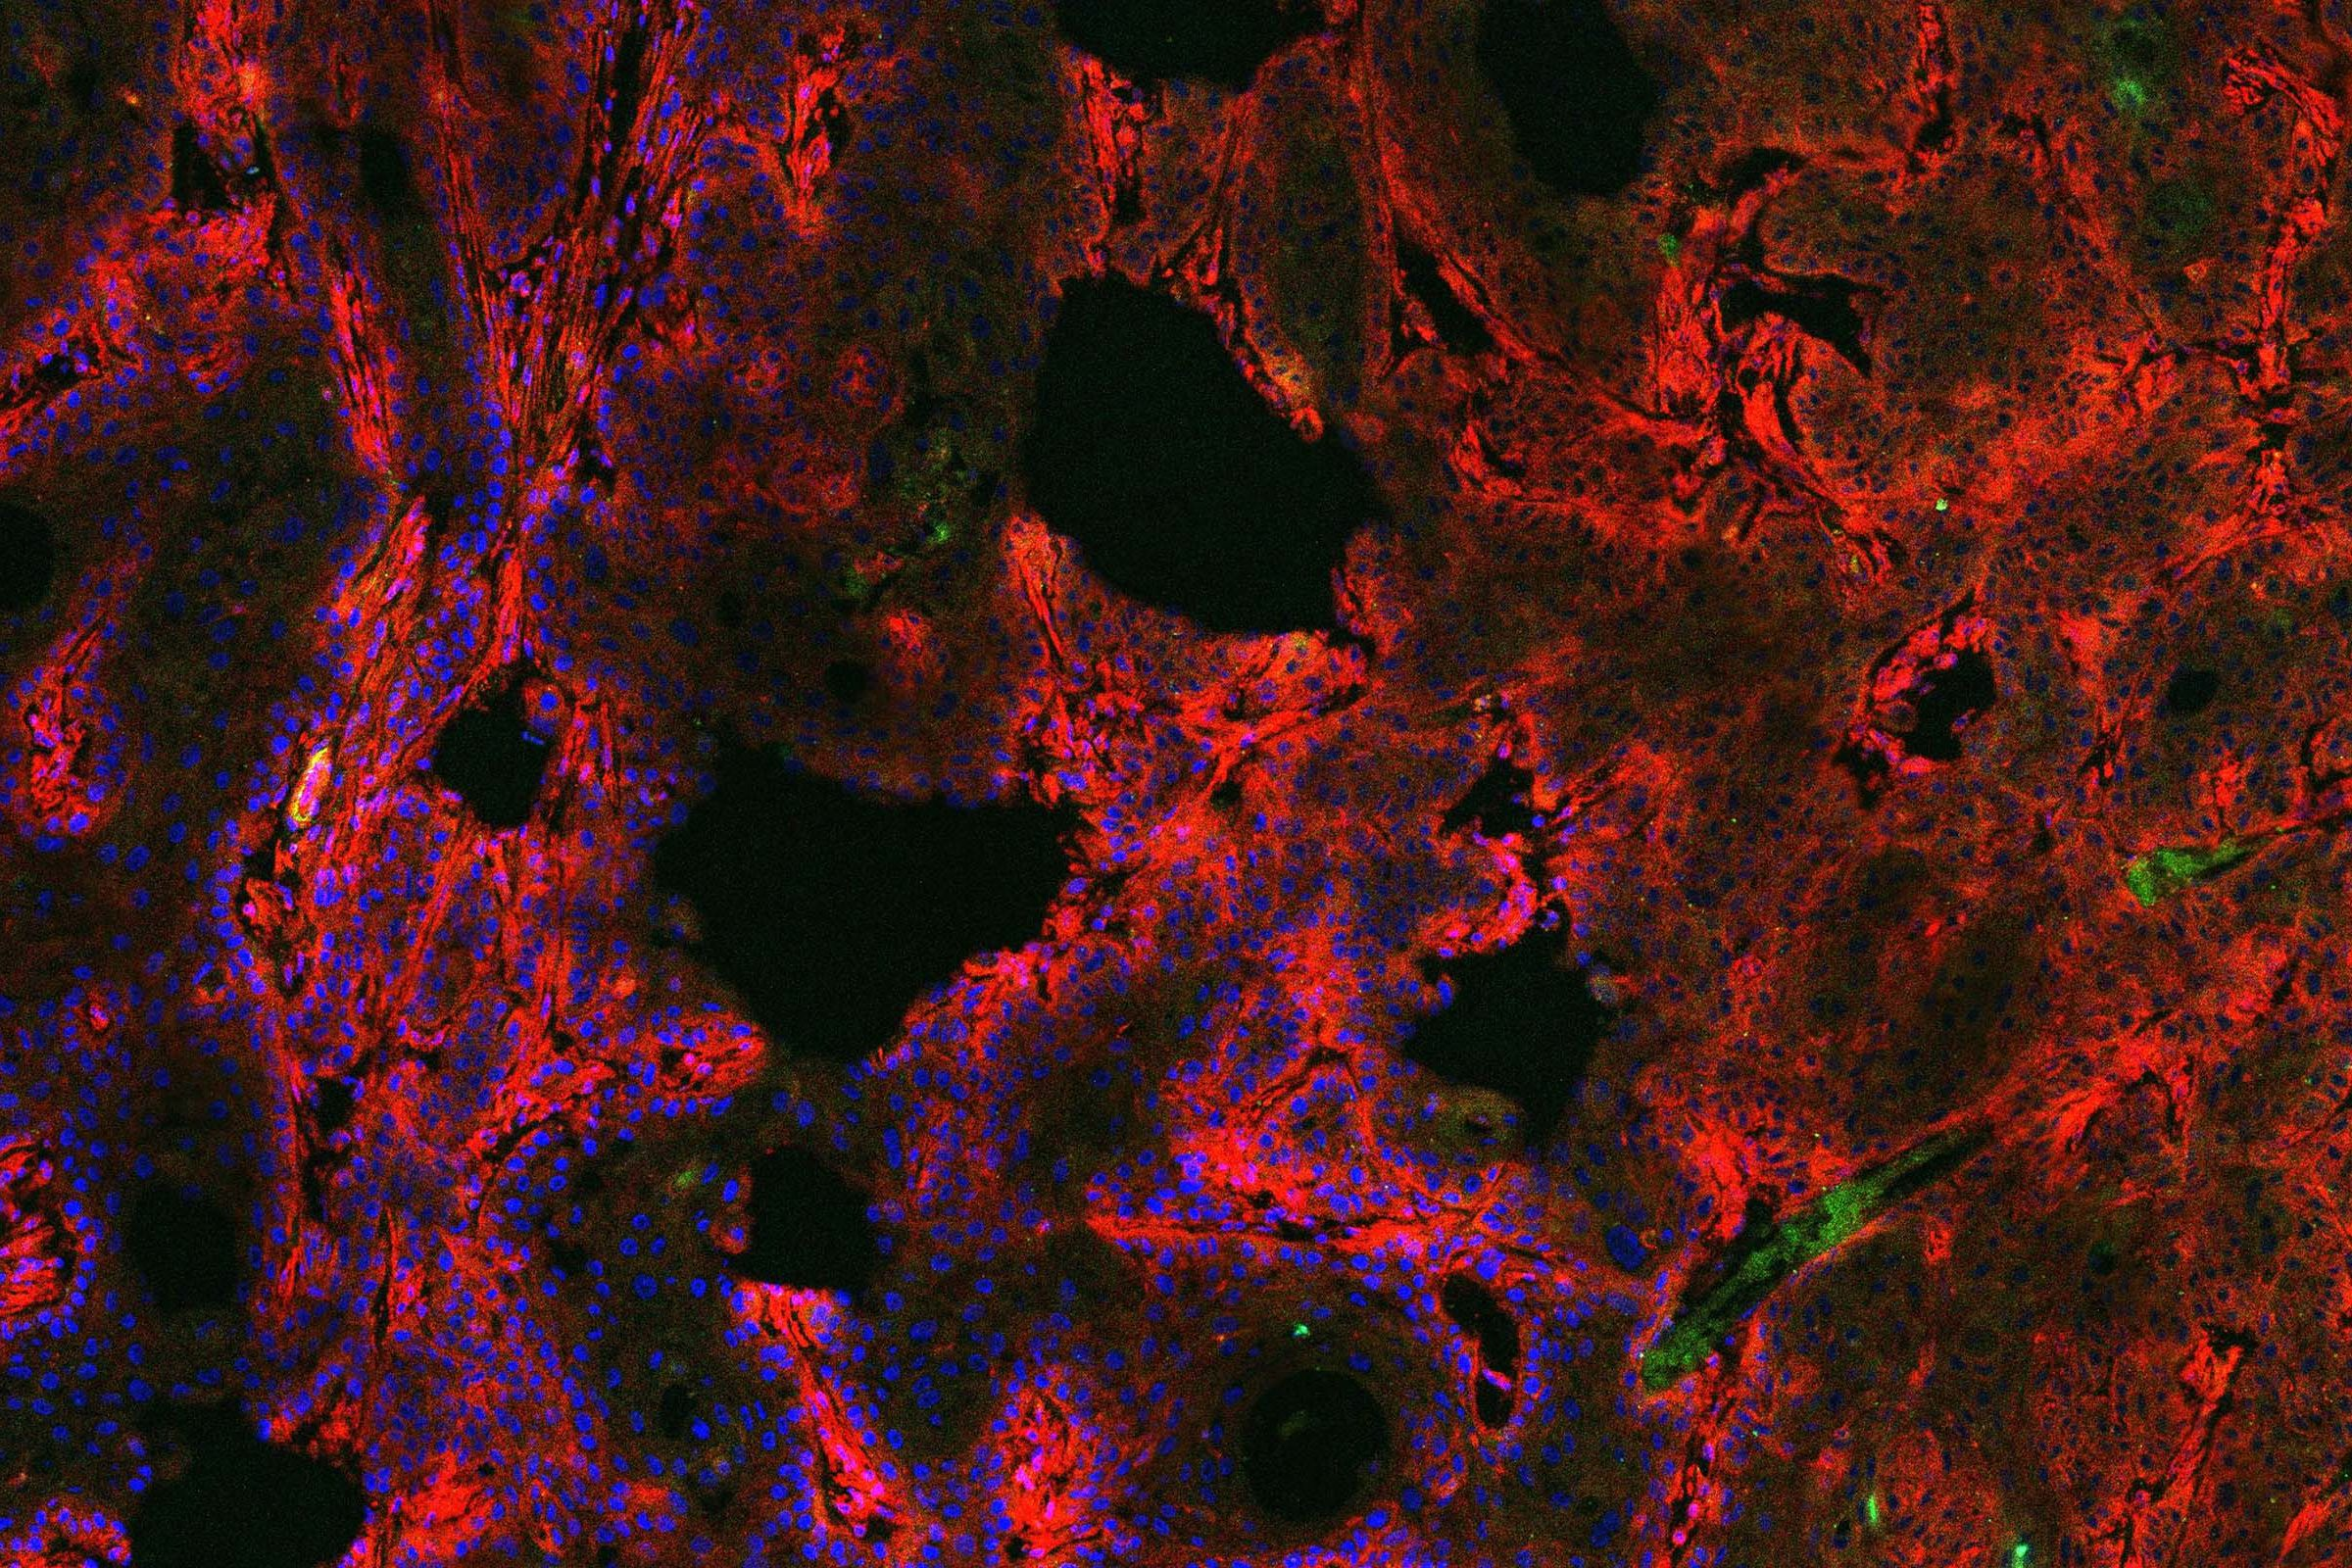 A microscopic image of a human tumor xenograft that glows red and blue from fluorescent dyes.